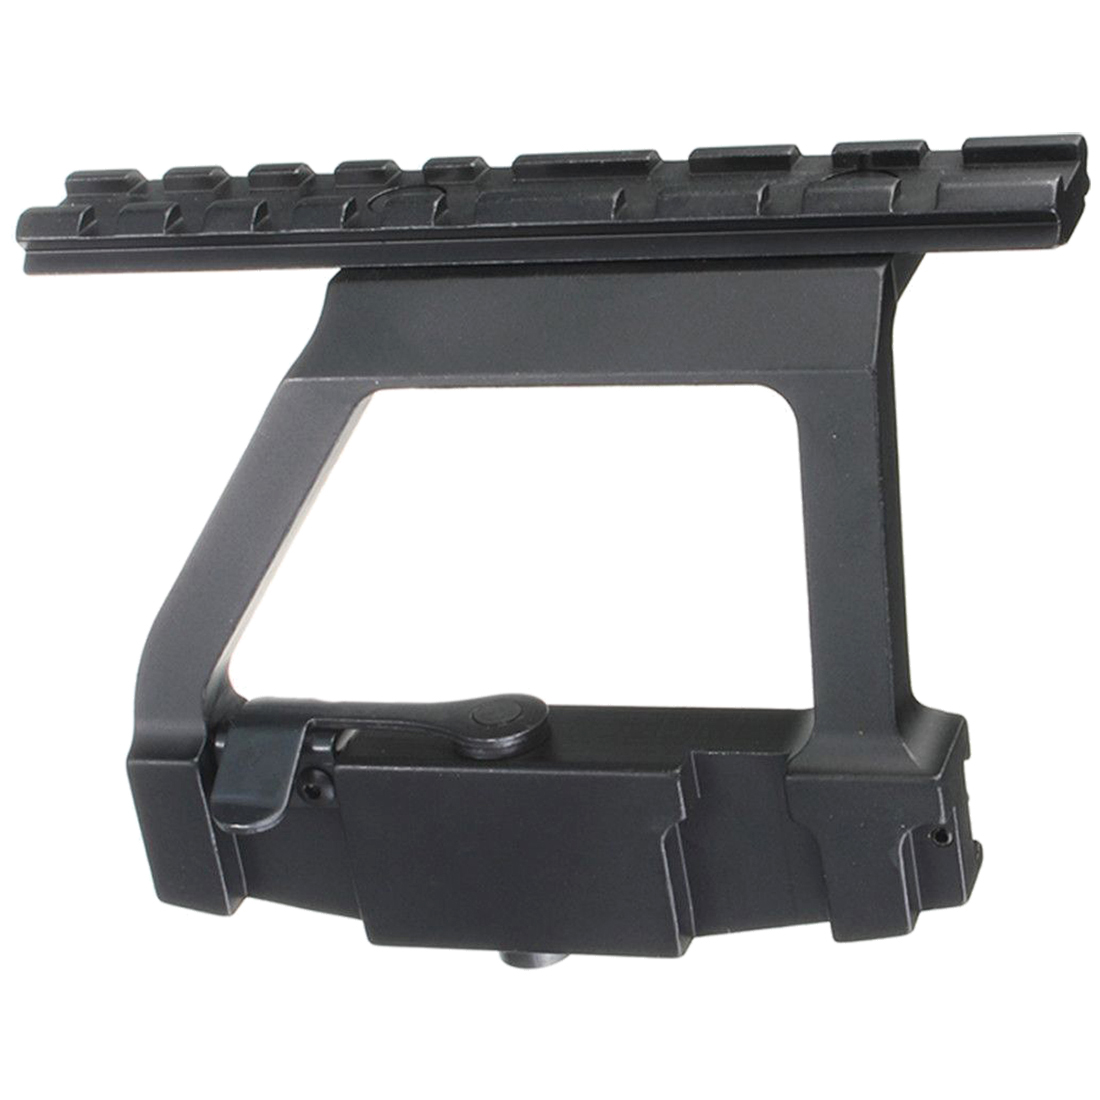 Aluminum 20mm Tactical Scope Sight Rail Mount Bracket Holder Base For Hunting Black